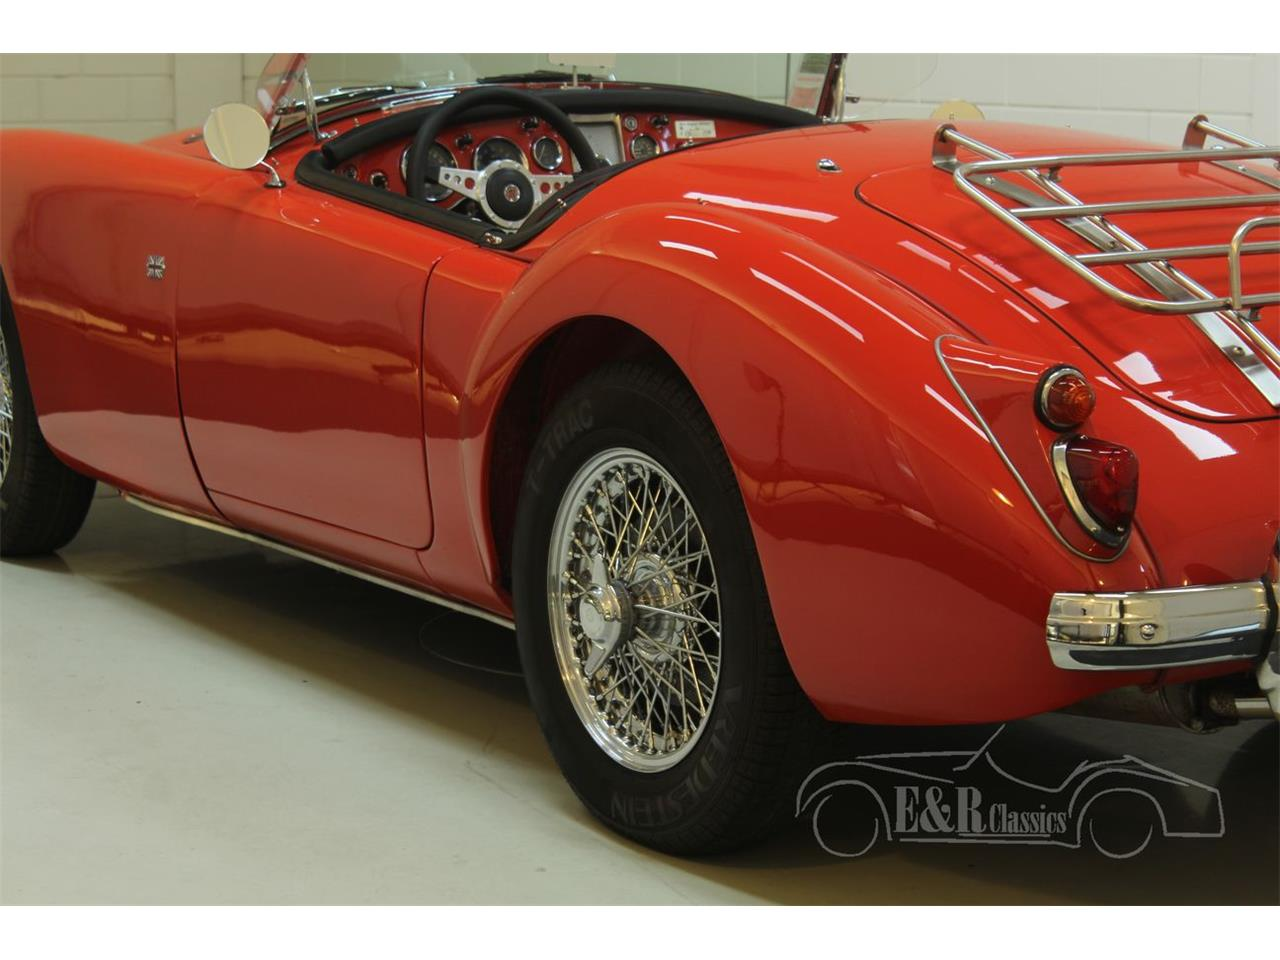 Large Picture of Classic 1962 MG MGA located in Waalwijk noord brabant - $44,900.00 Offered by E & R Classics - Q2W8